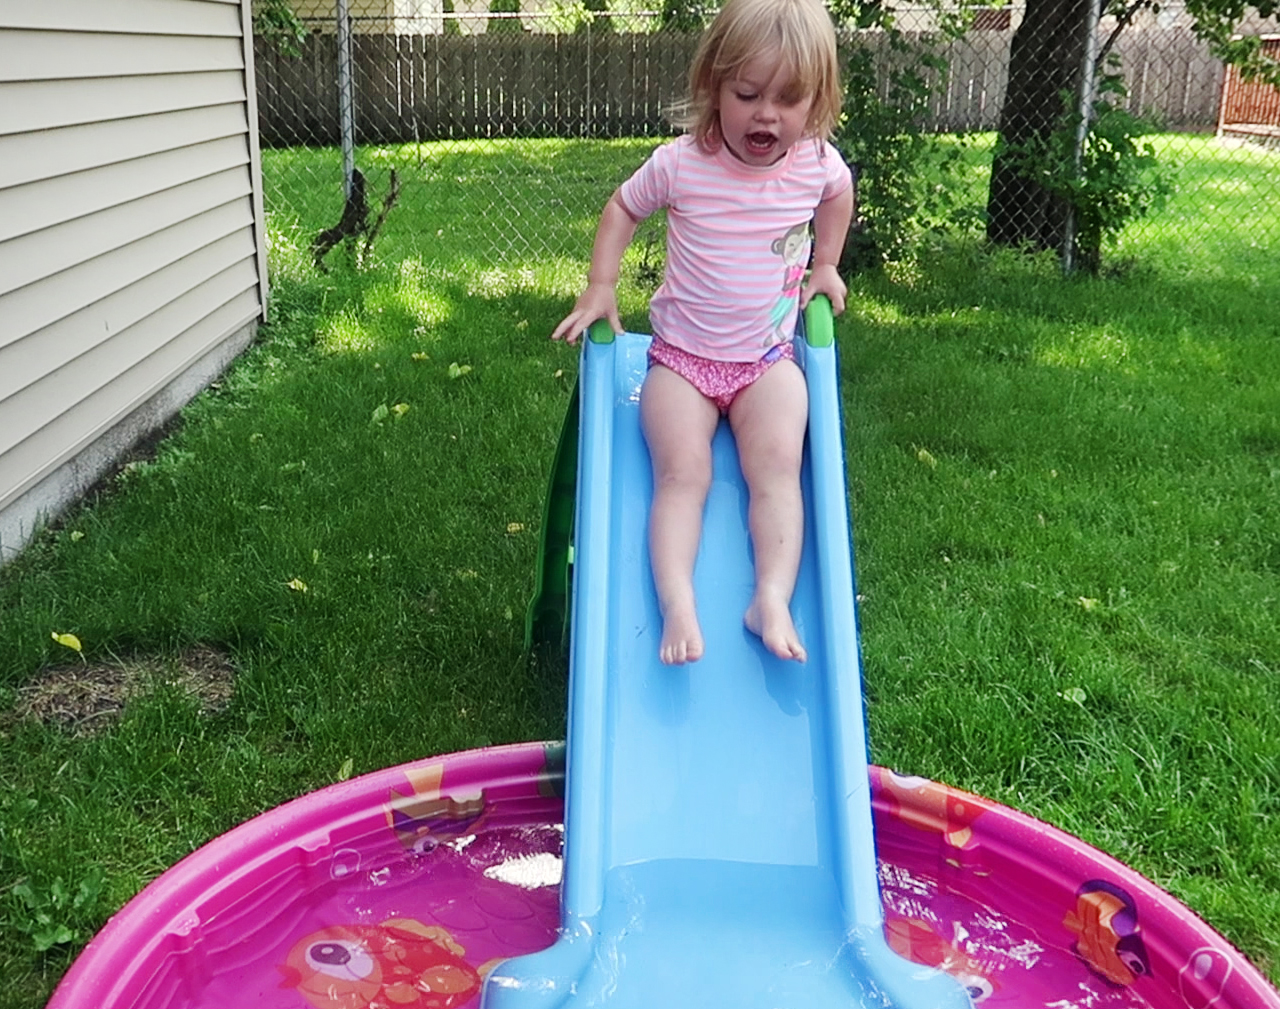 5 Fun Things for Summer at Home: Toddler Edition